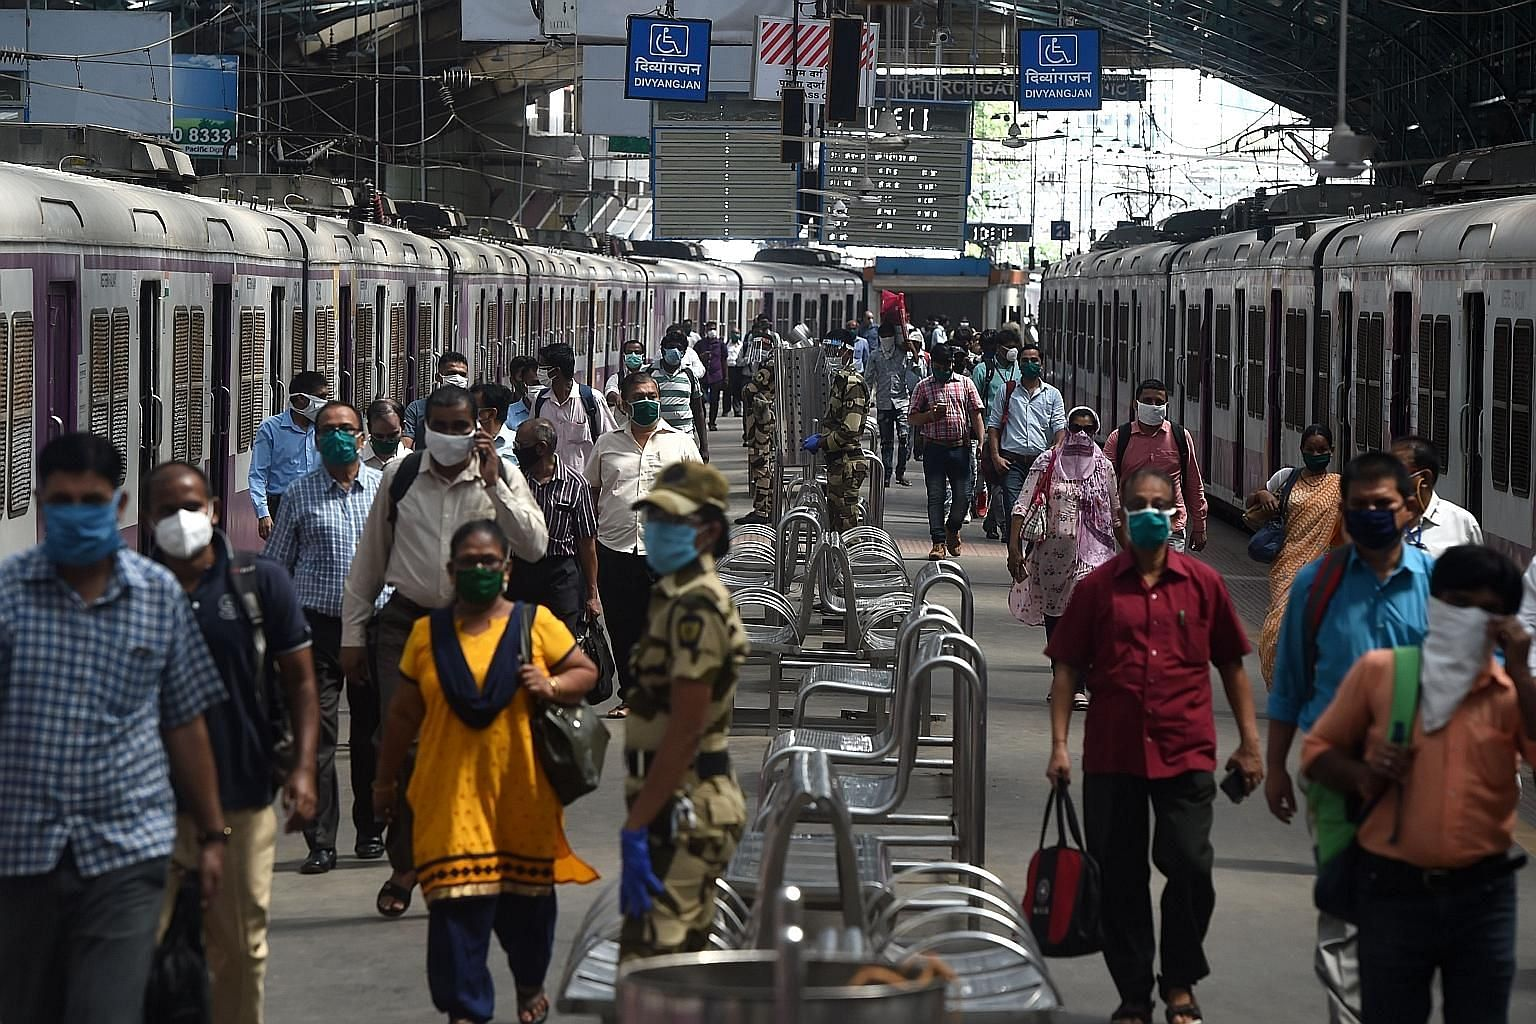 Travellers at the Churchgate station in Mumbai last month. India's plan to allow private players on the rail network will see them operate 151 trains on 109 routes around some key cities by April 2023. PHOTO: AGENCE FRANCE-PRESSE